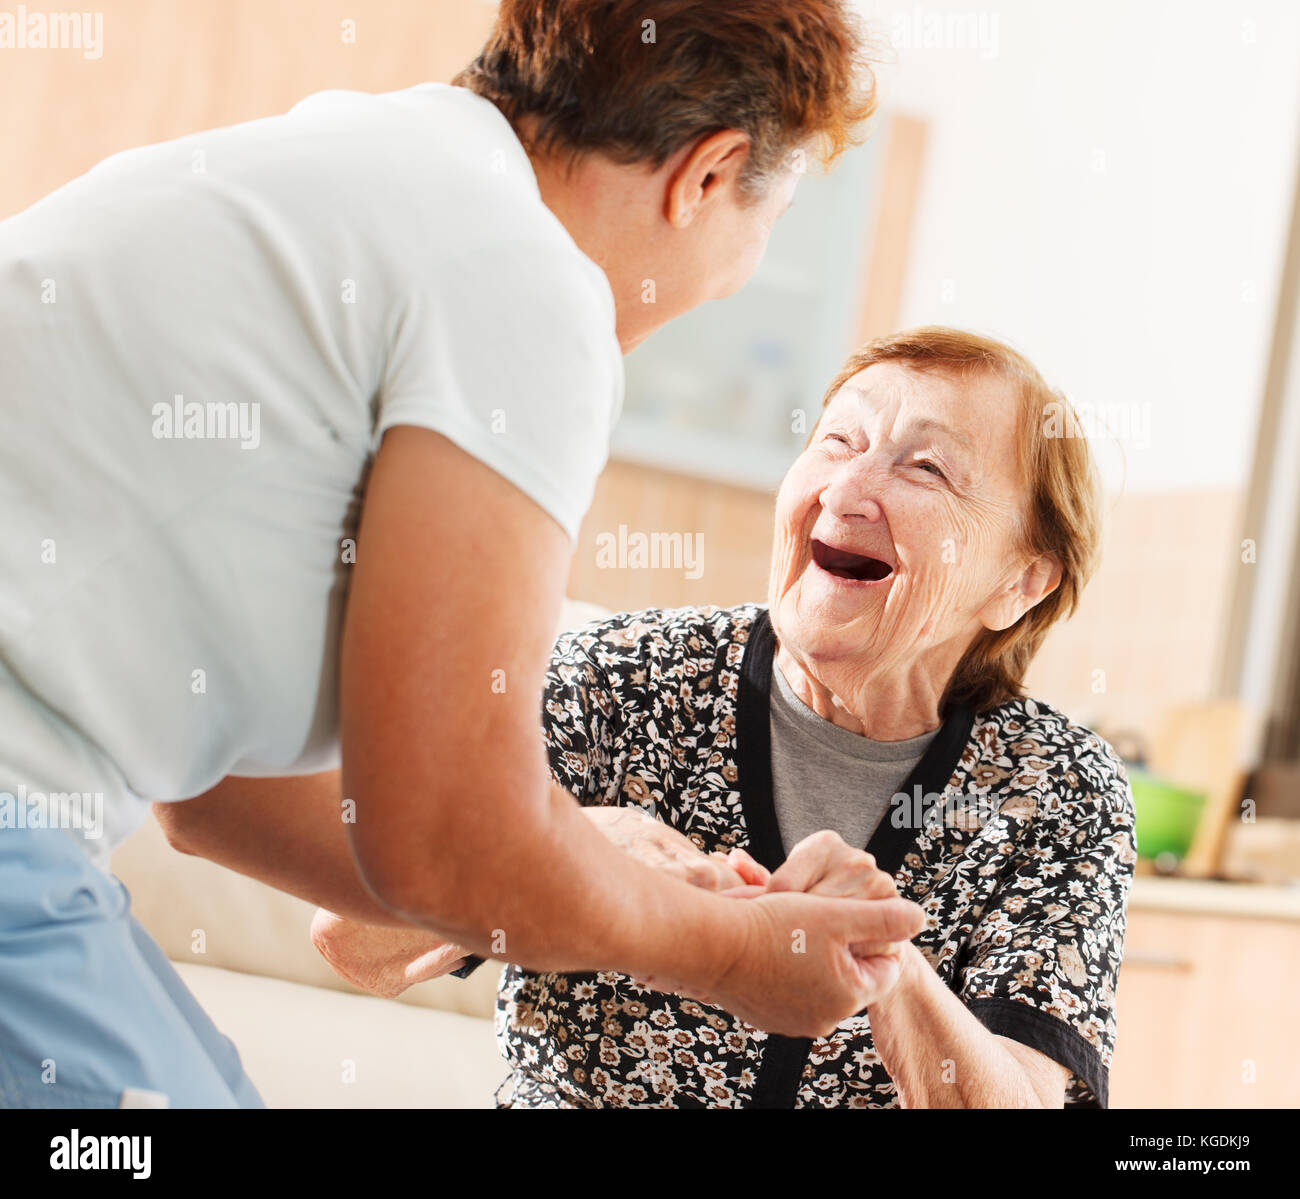 Mother and daughter holding each other - Stock Image